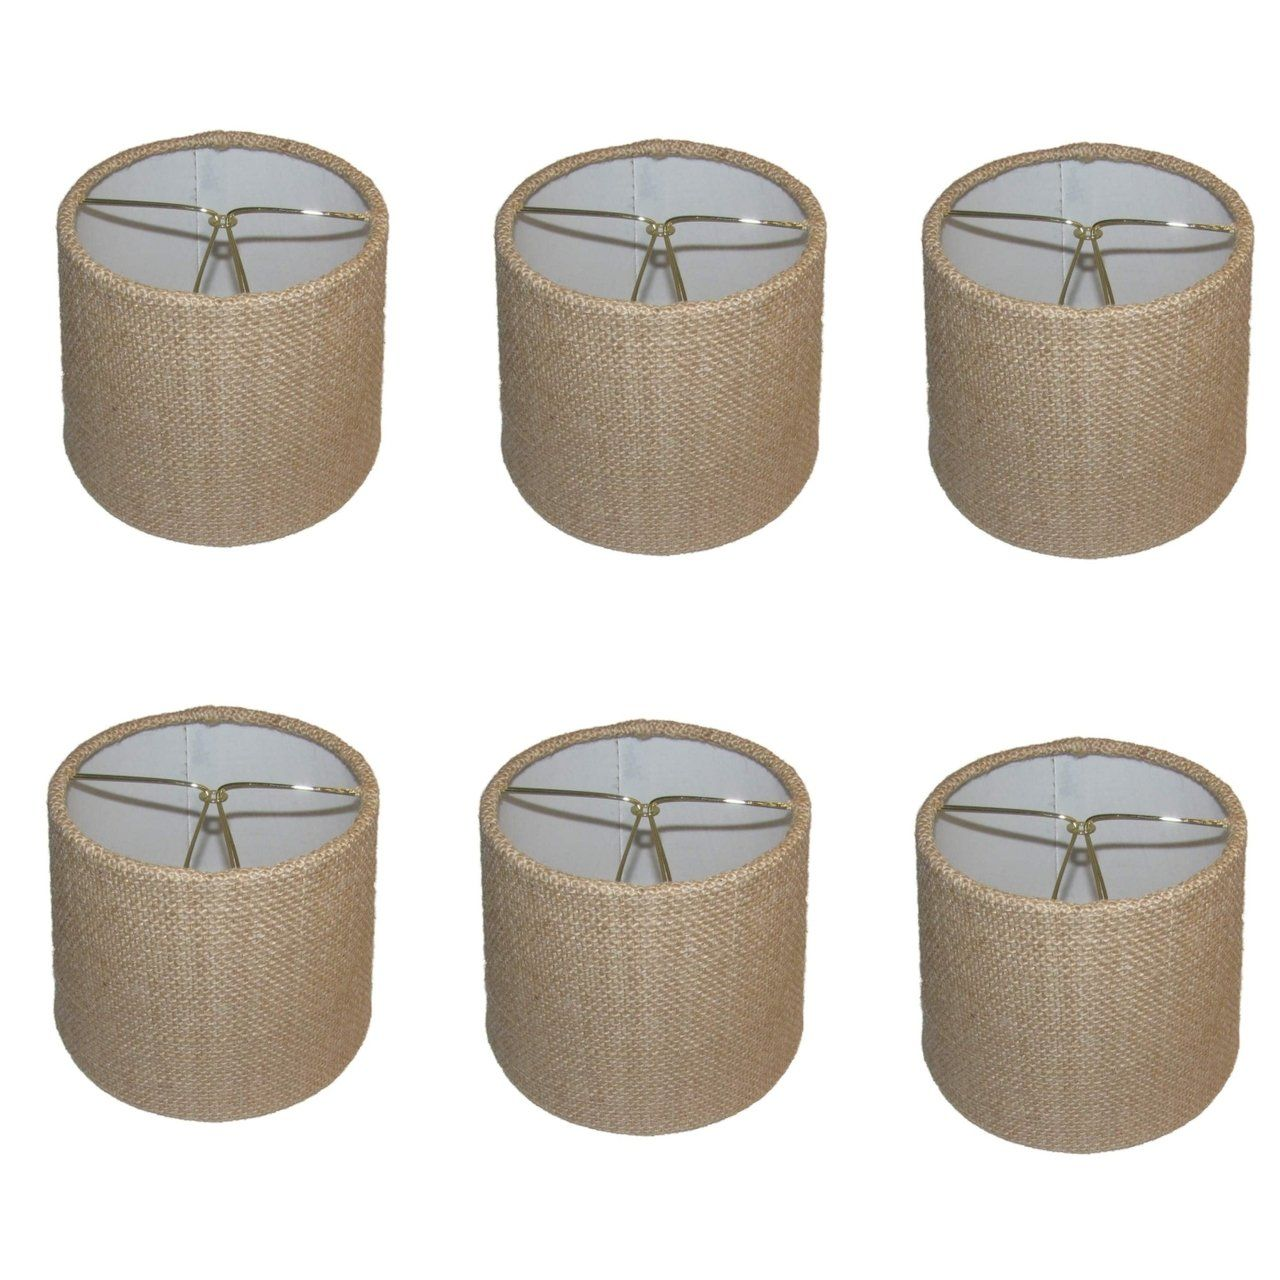 Upgradelights set of six european drum style chandelier lamp shade upgradelights set of six european drum style chandelier lamp shade mini shade natural burlap fabric aloadofball Image collections